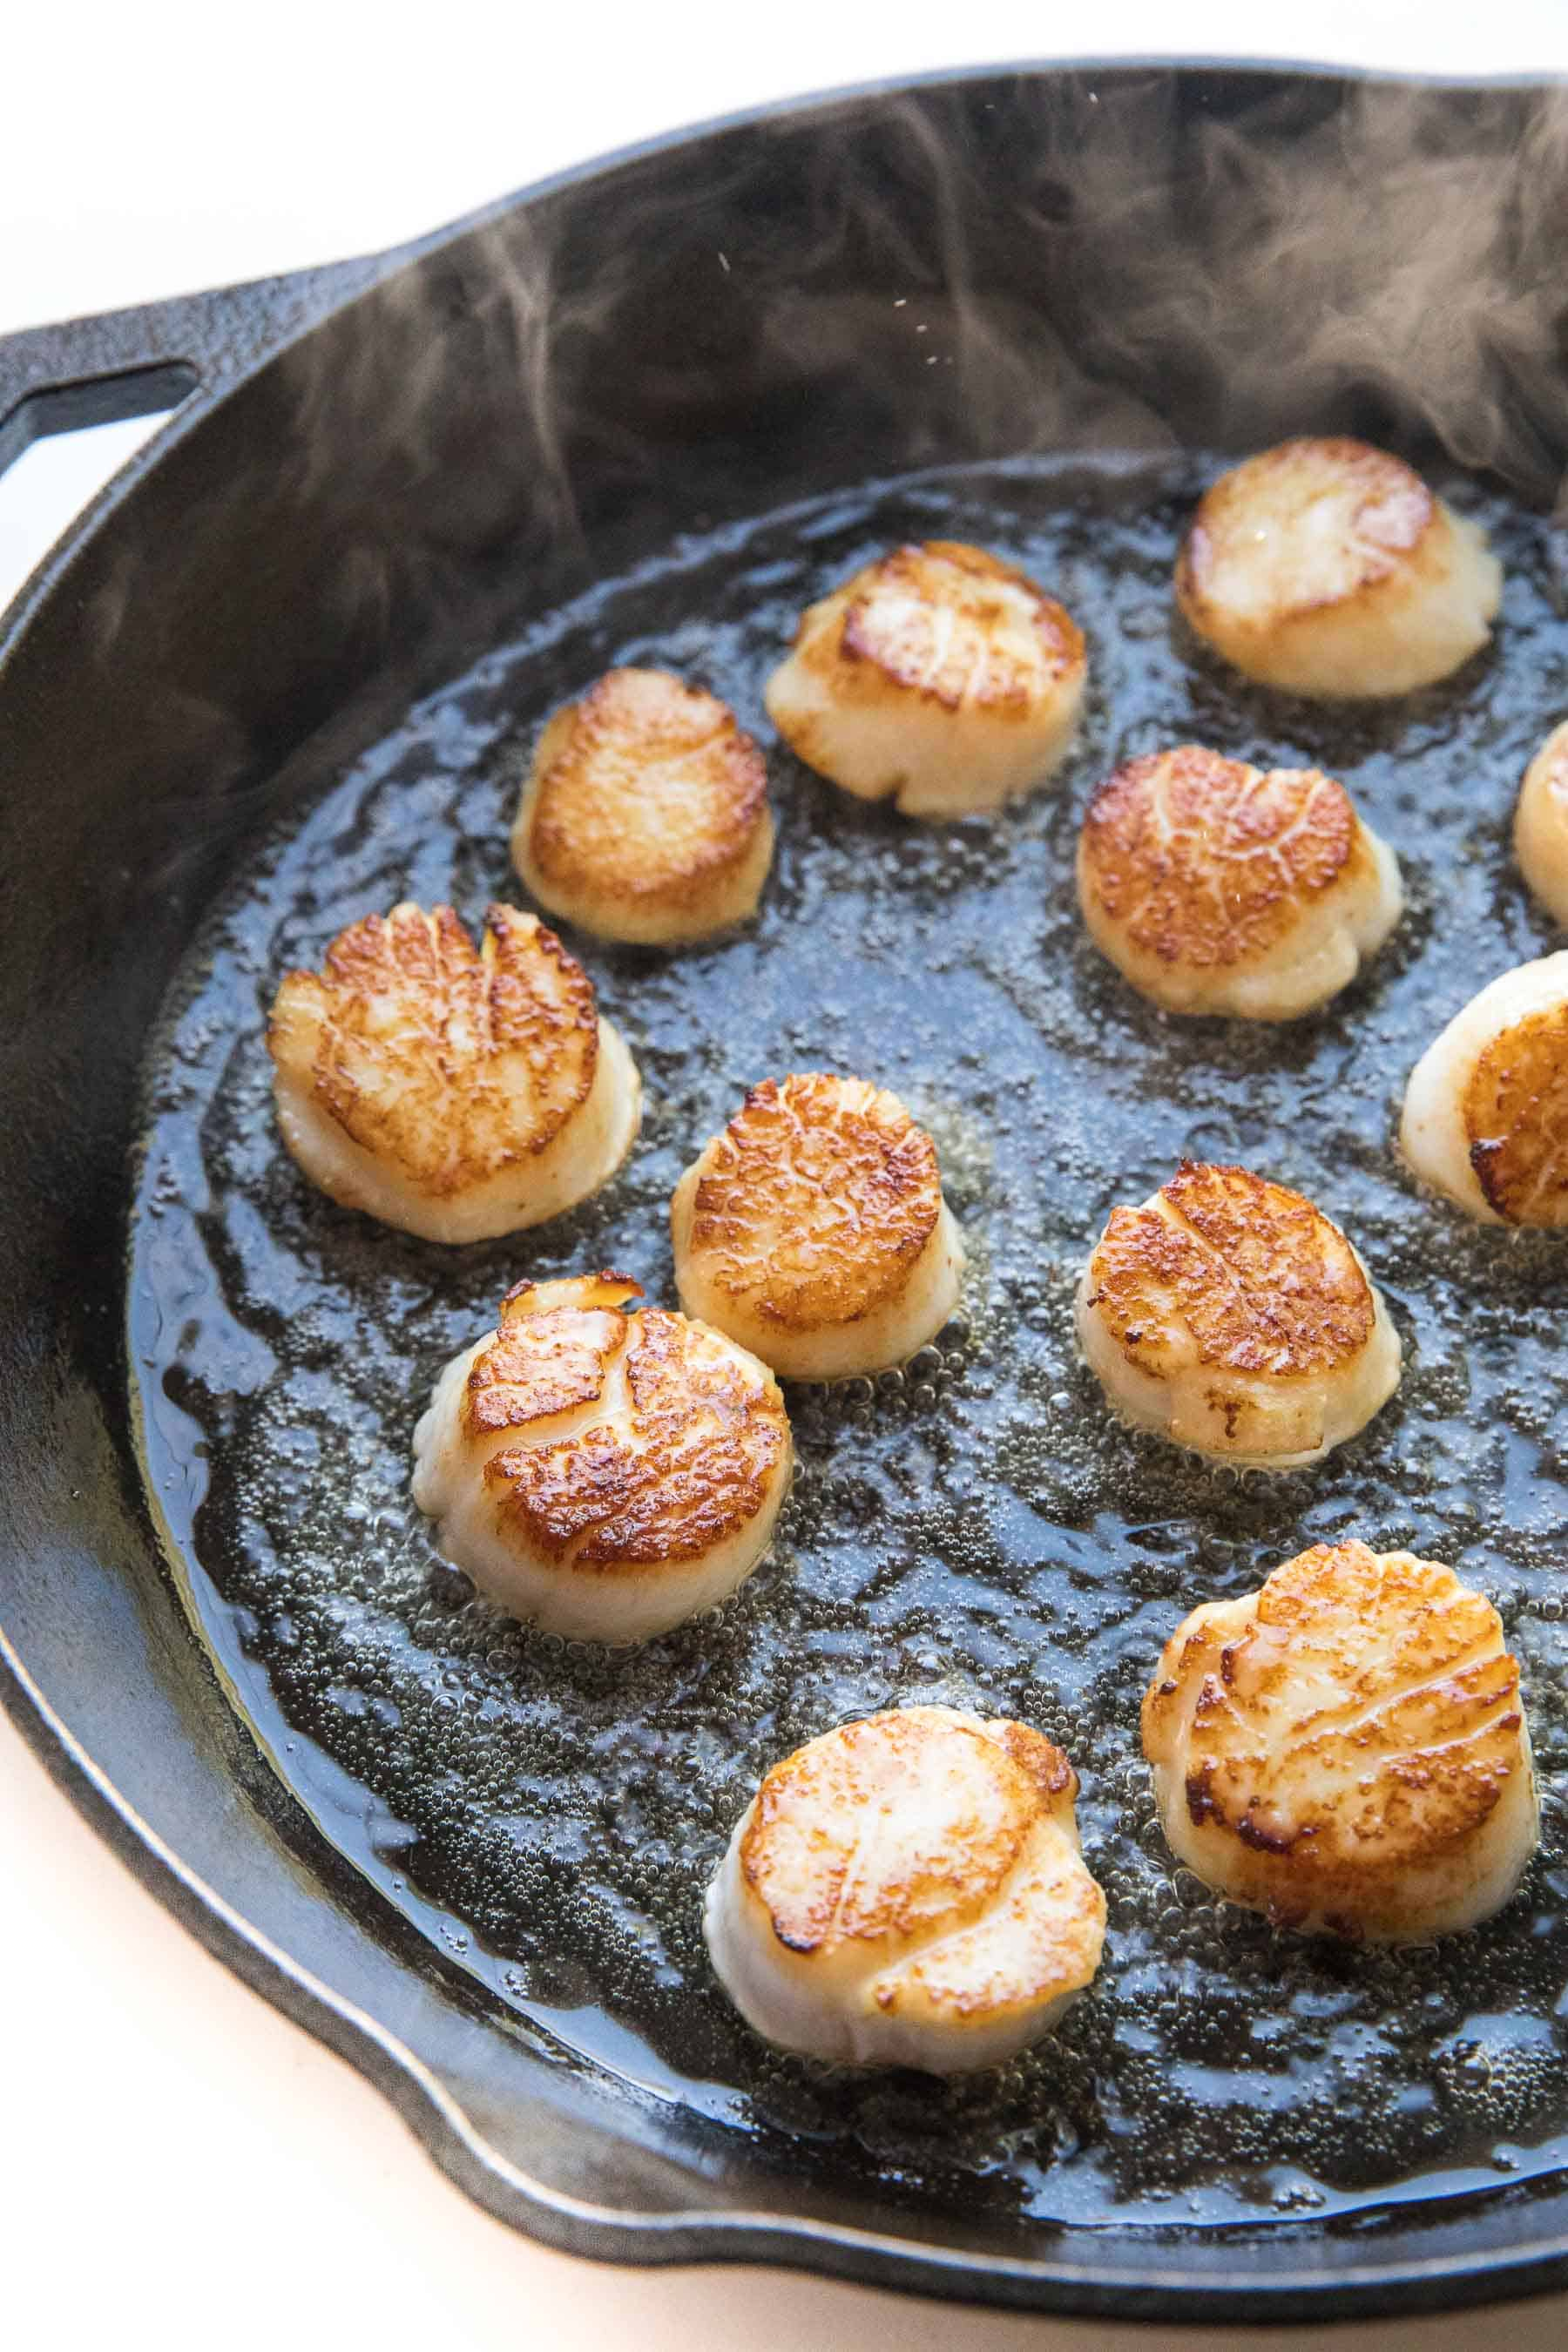 scallops searing in a cast iron skillet